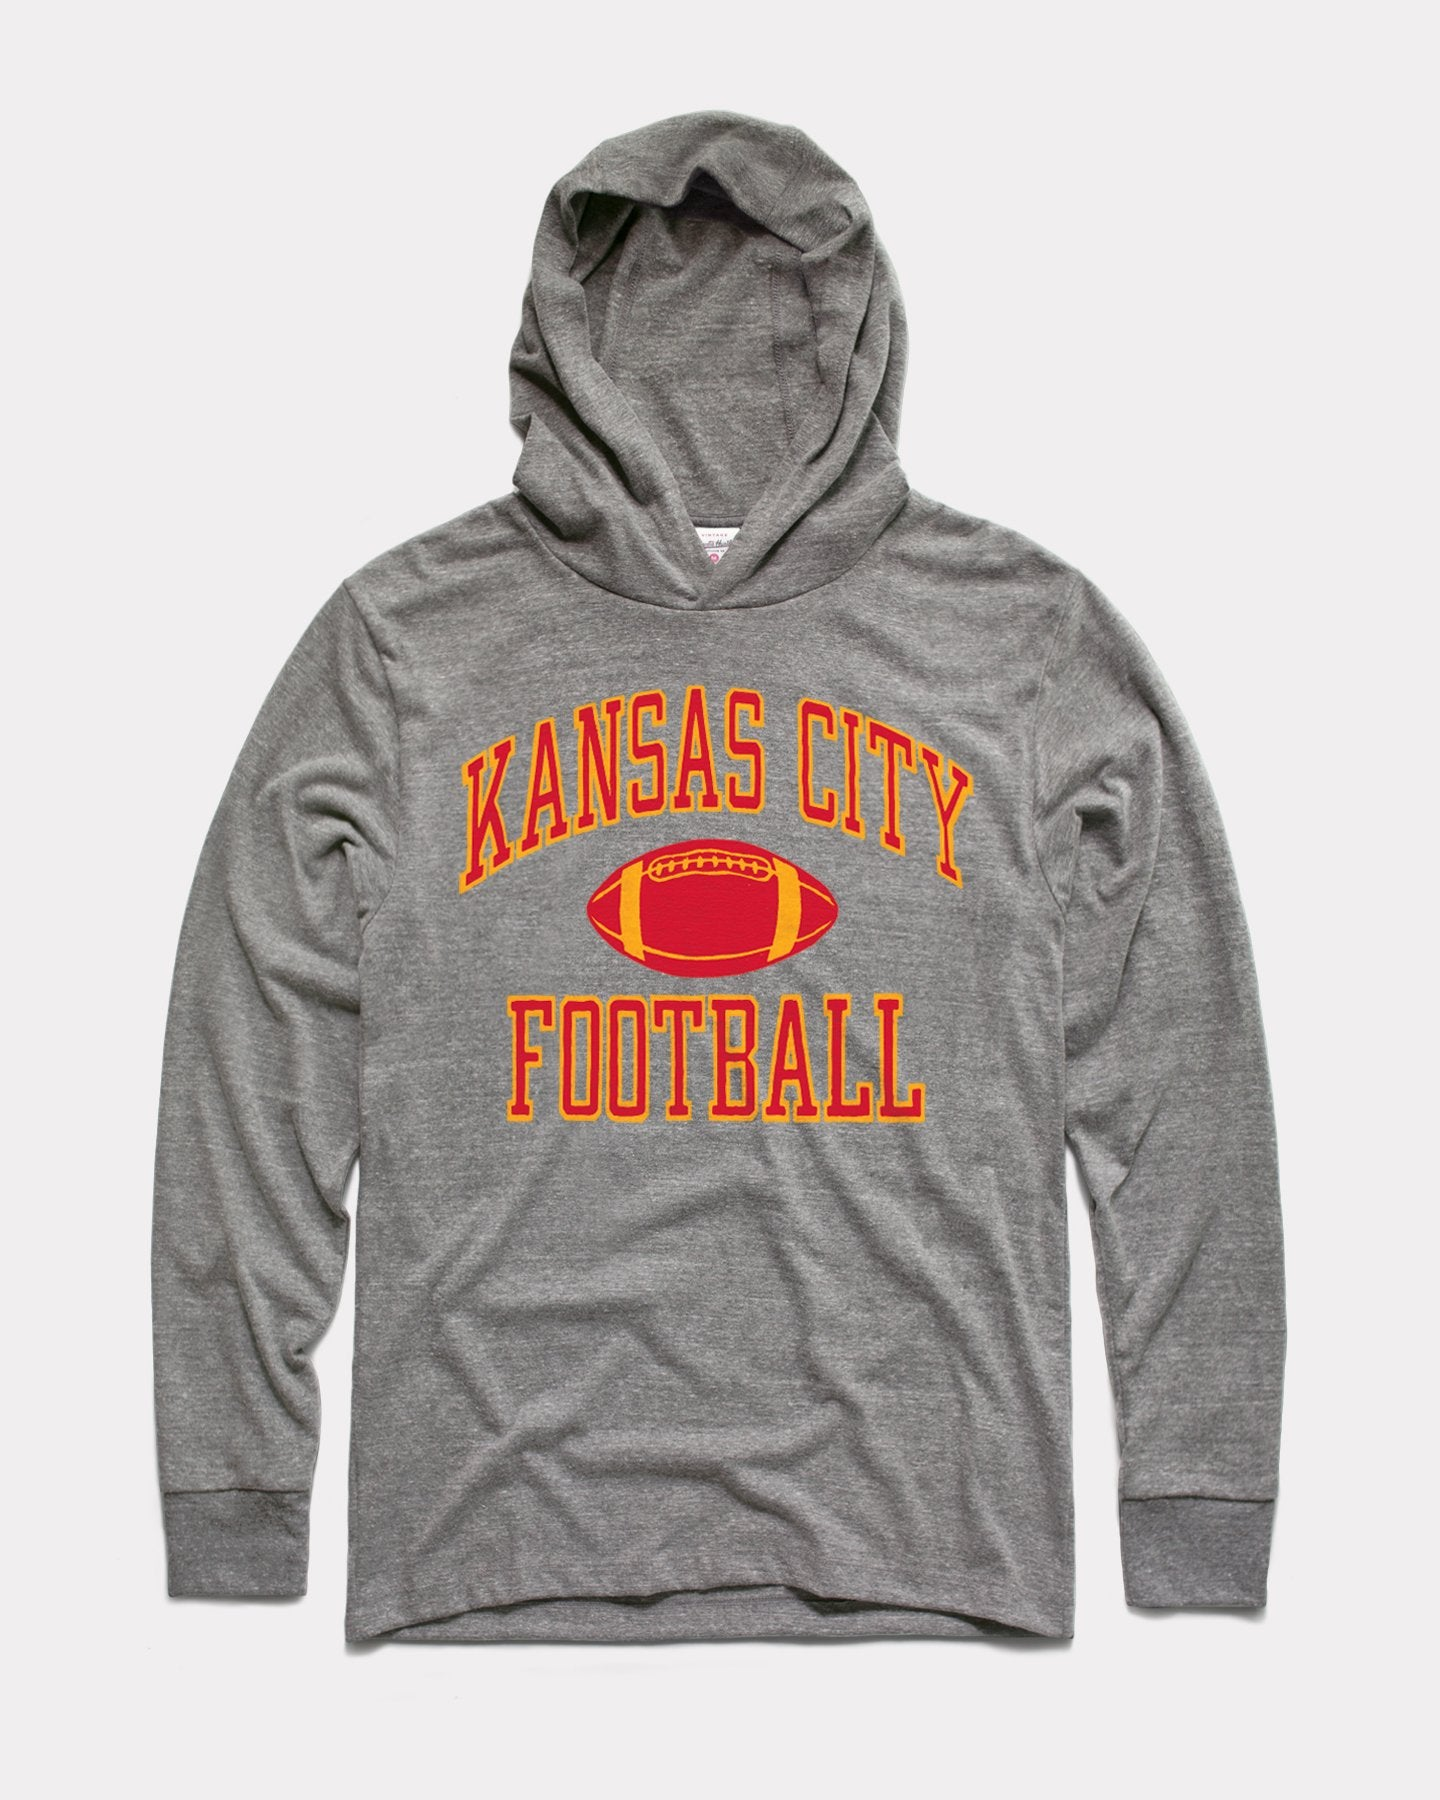 Grey Kansas City Football Vintage Arrowhead Lightweight Hoodie Sweatshirt